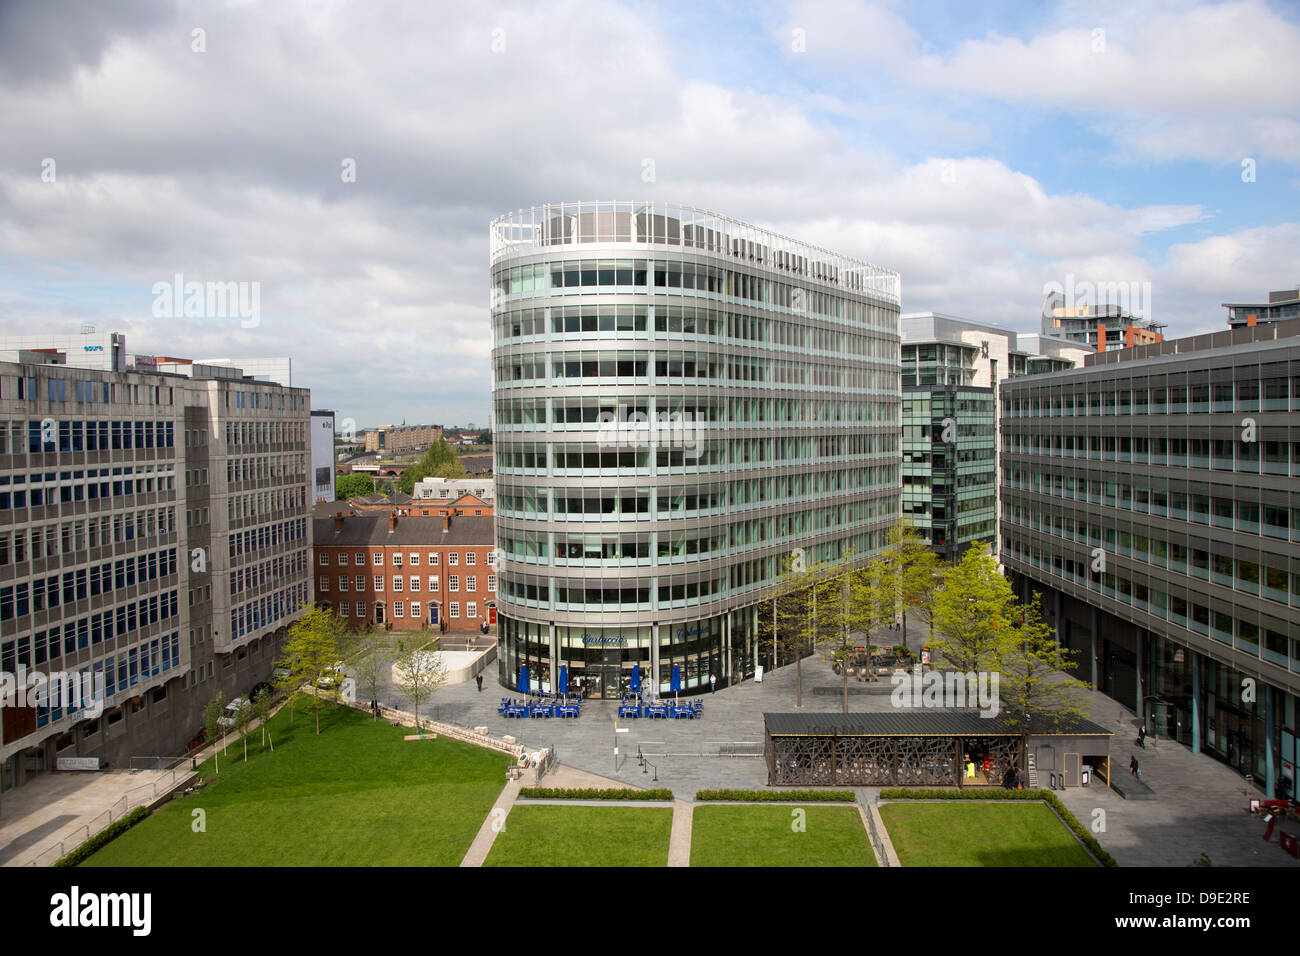 Uk, Manchester, Spinningfields banking district - Stock Image